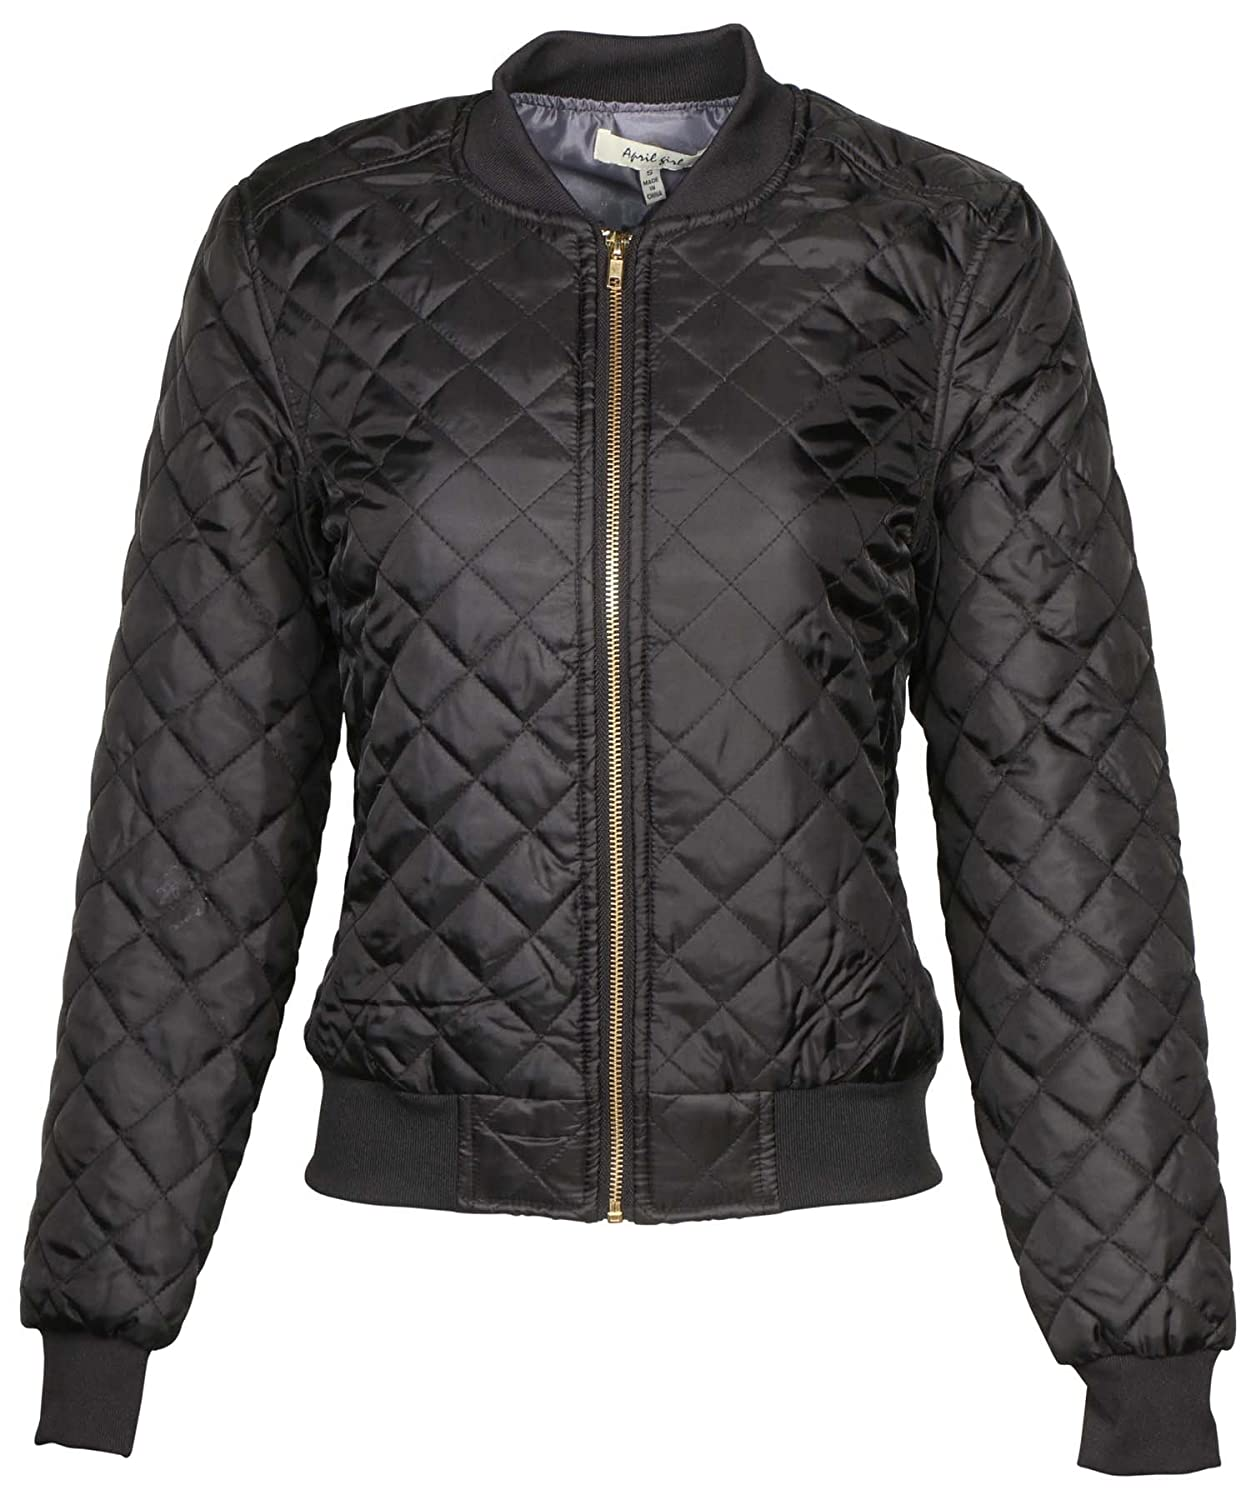 9 Crowns AG Womens Quilted Bomber Jacket by Essentials